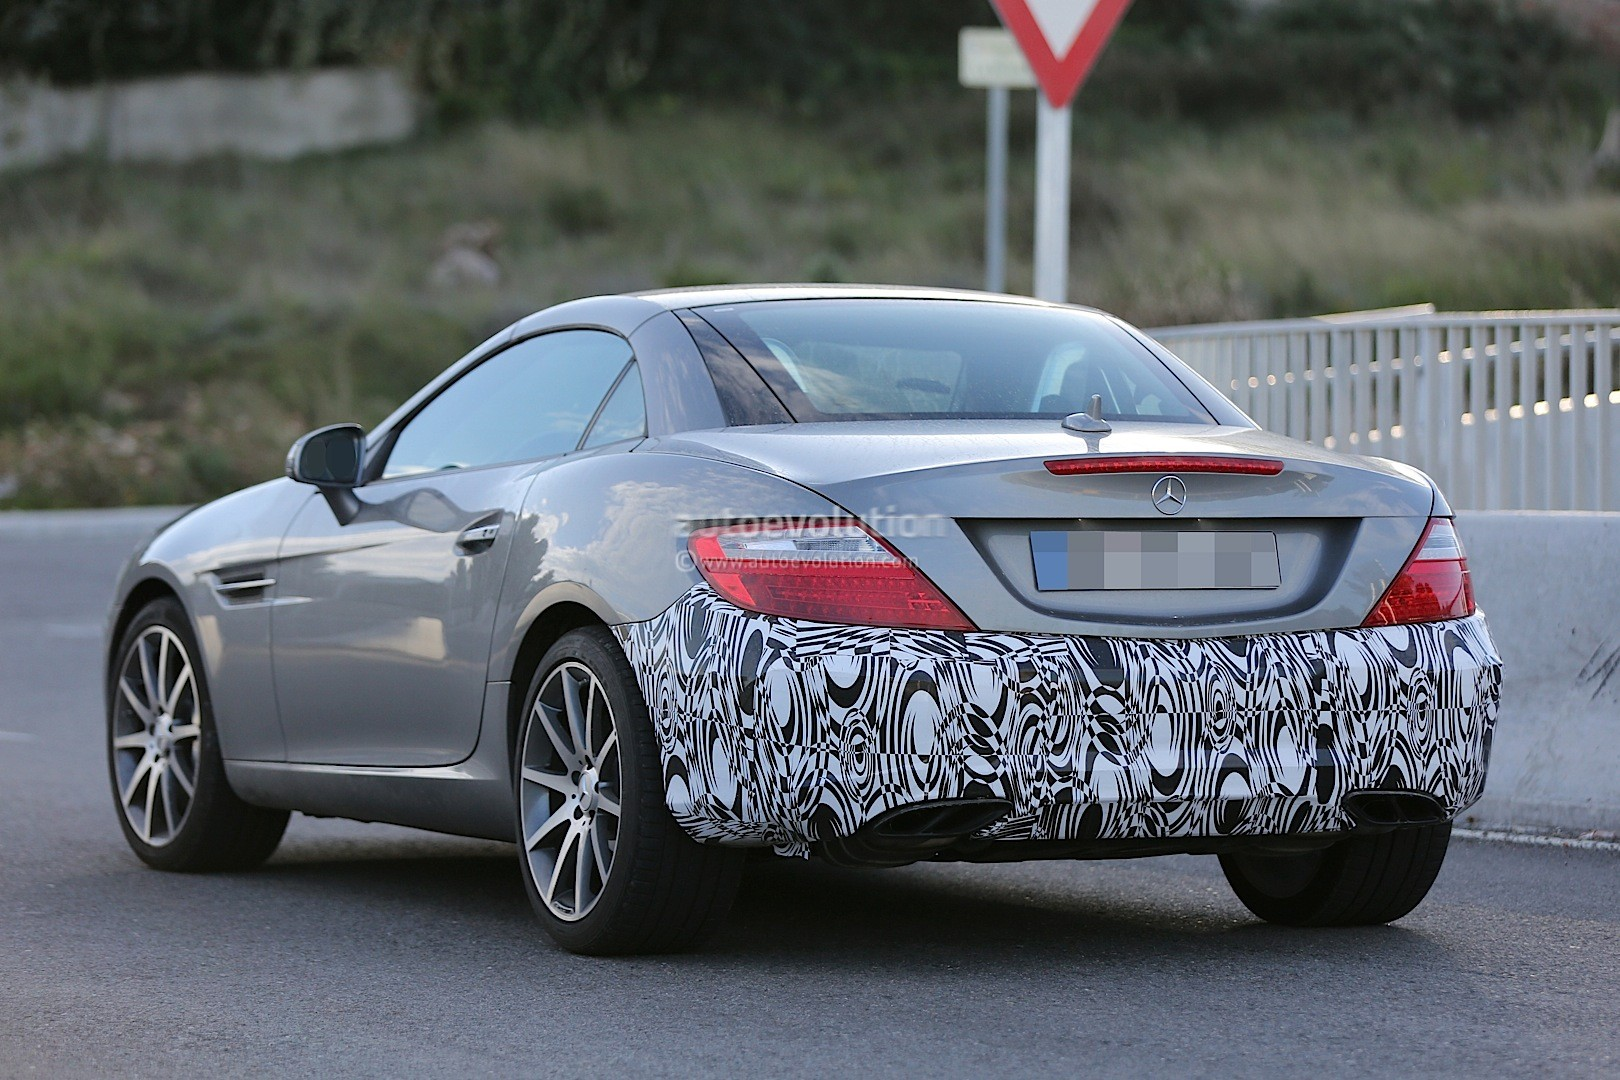 2015 - [Mercedes] SLC (ex-SLK) [R172] 2016-mercedes-benz-slc-is-a-mid-cycle-facelift-for-the-slk-photo-gallery_2